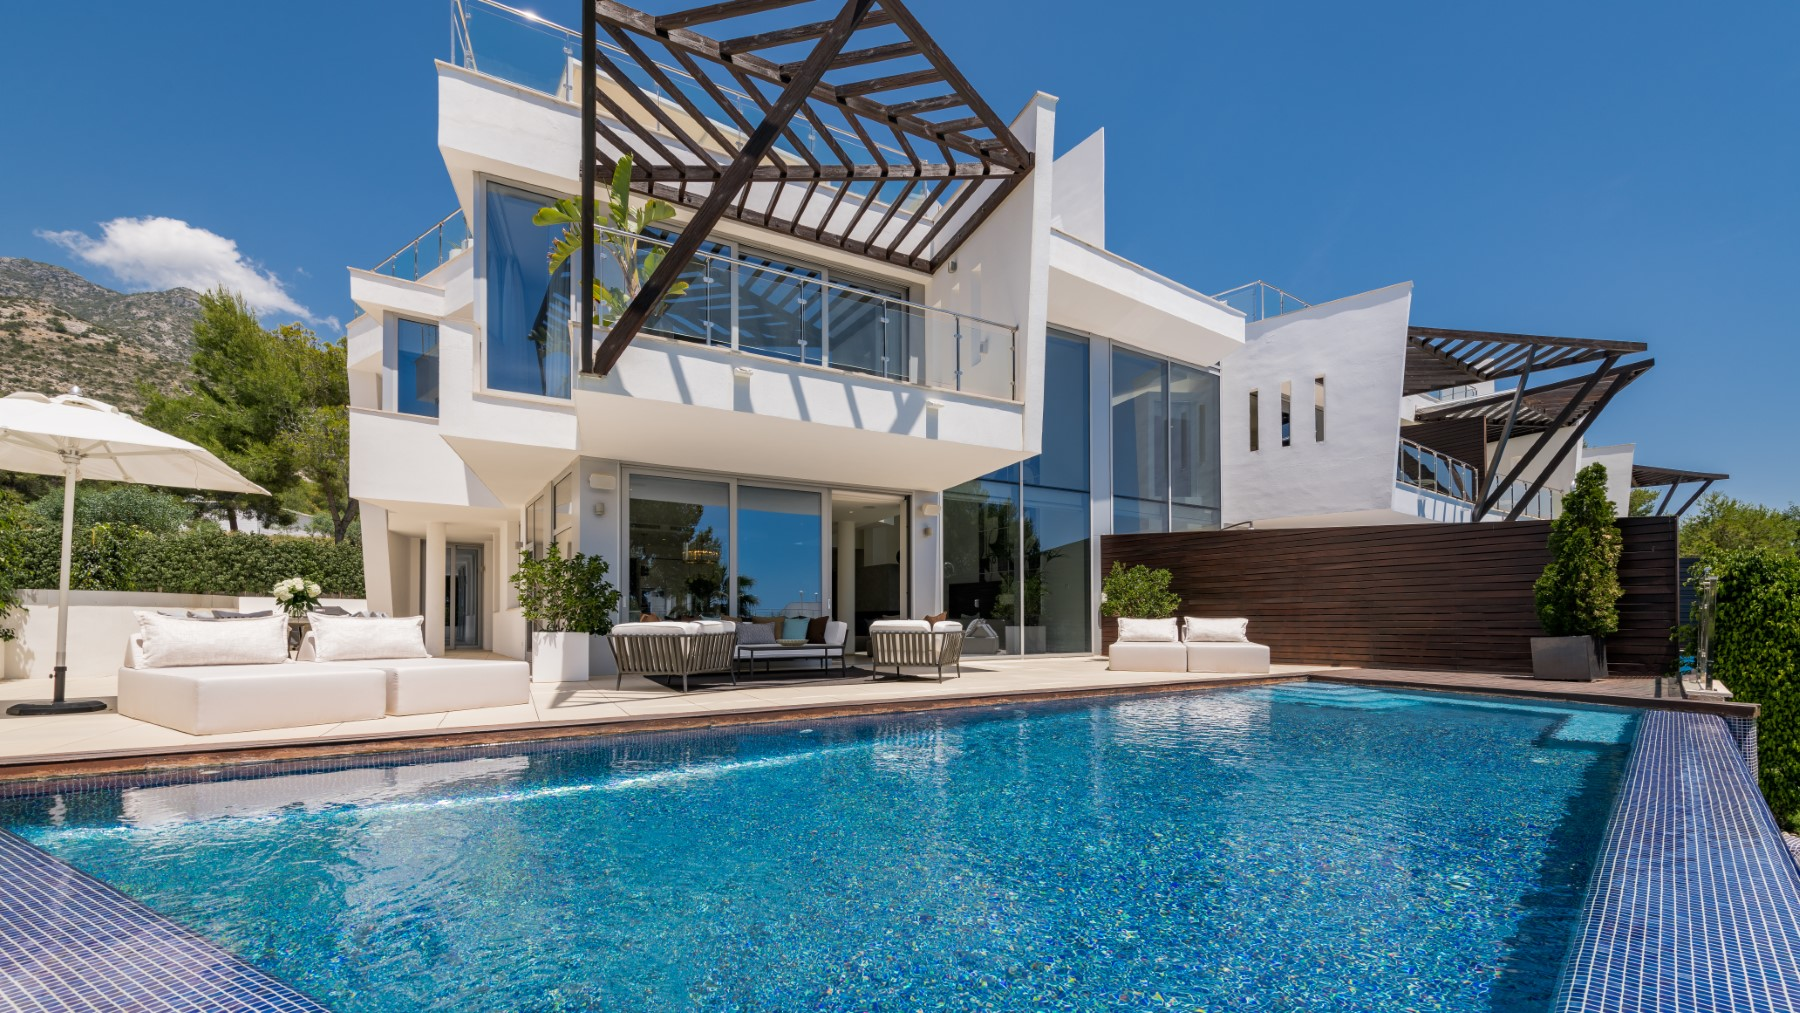 Meisho Hills is an exclusive residential complex, located in Marbella